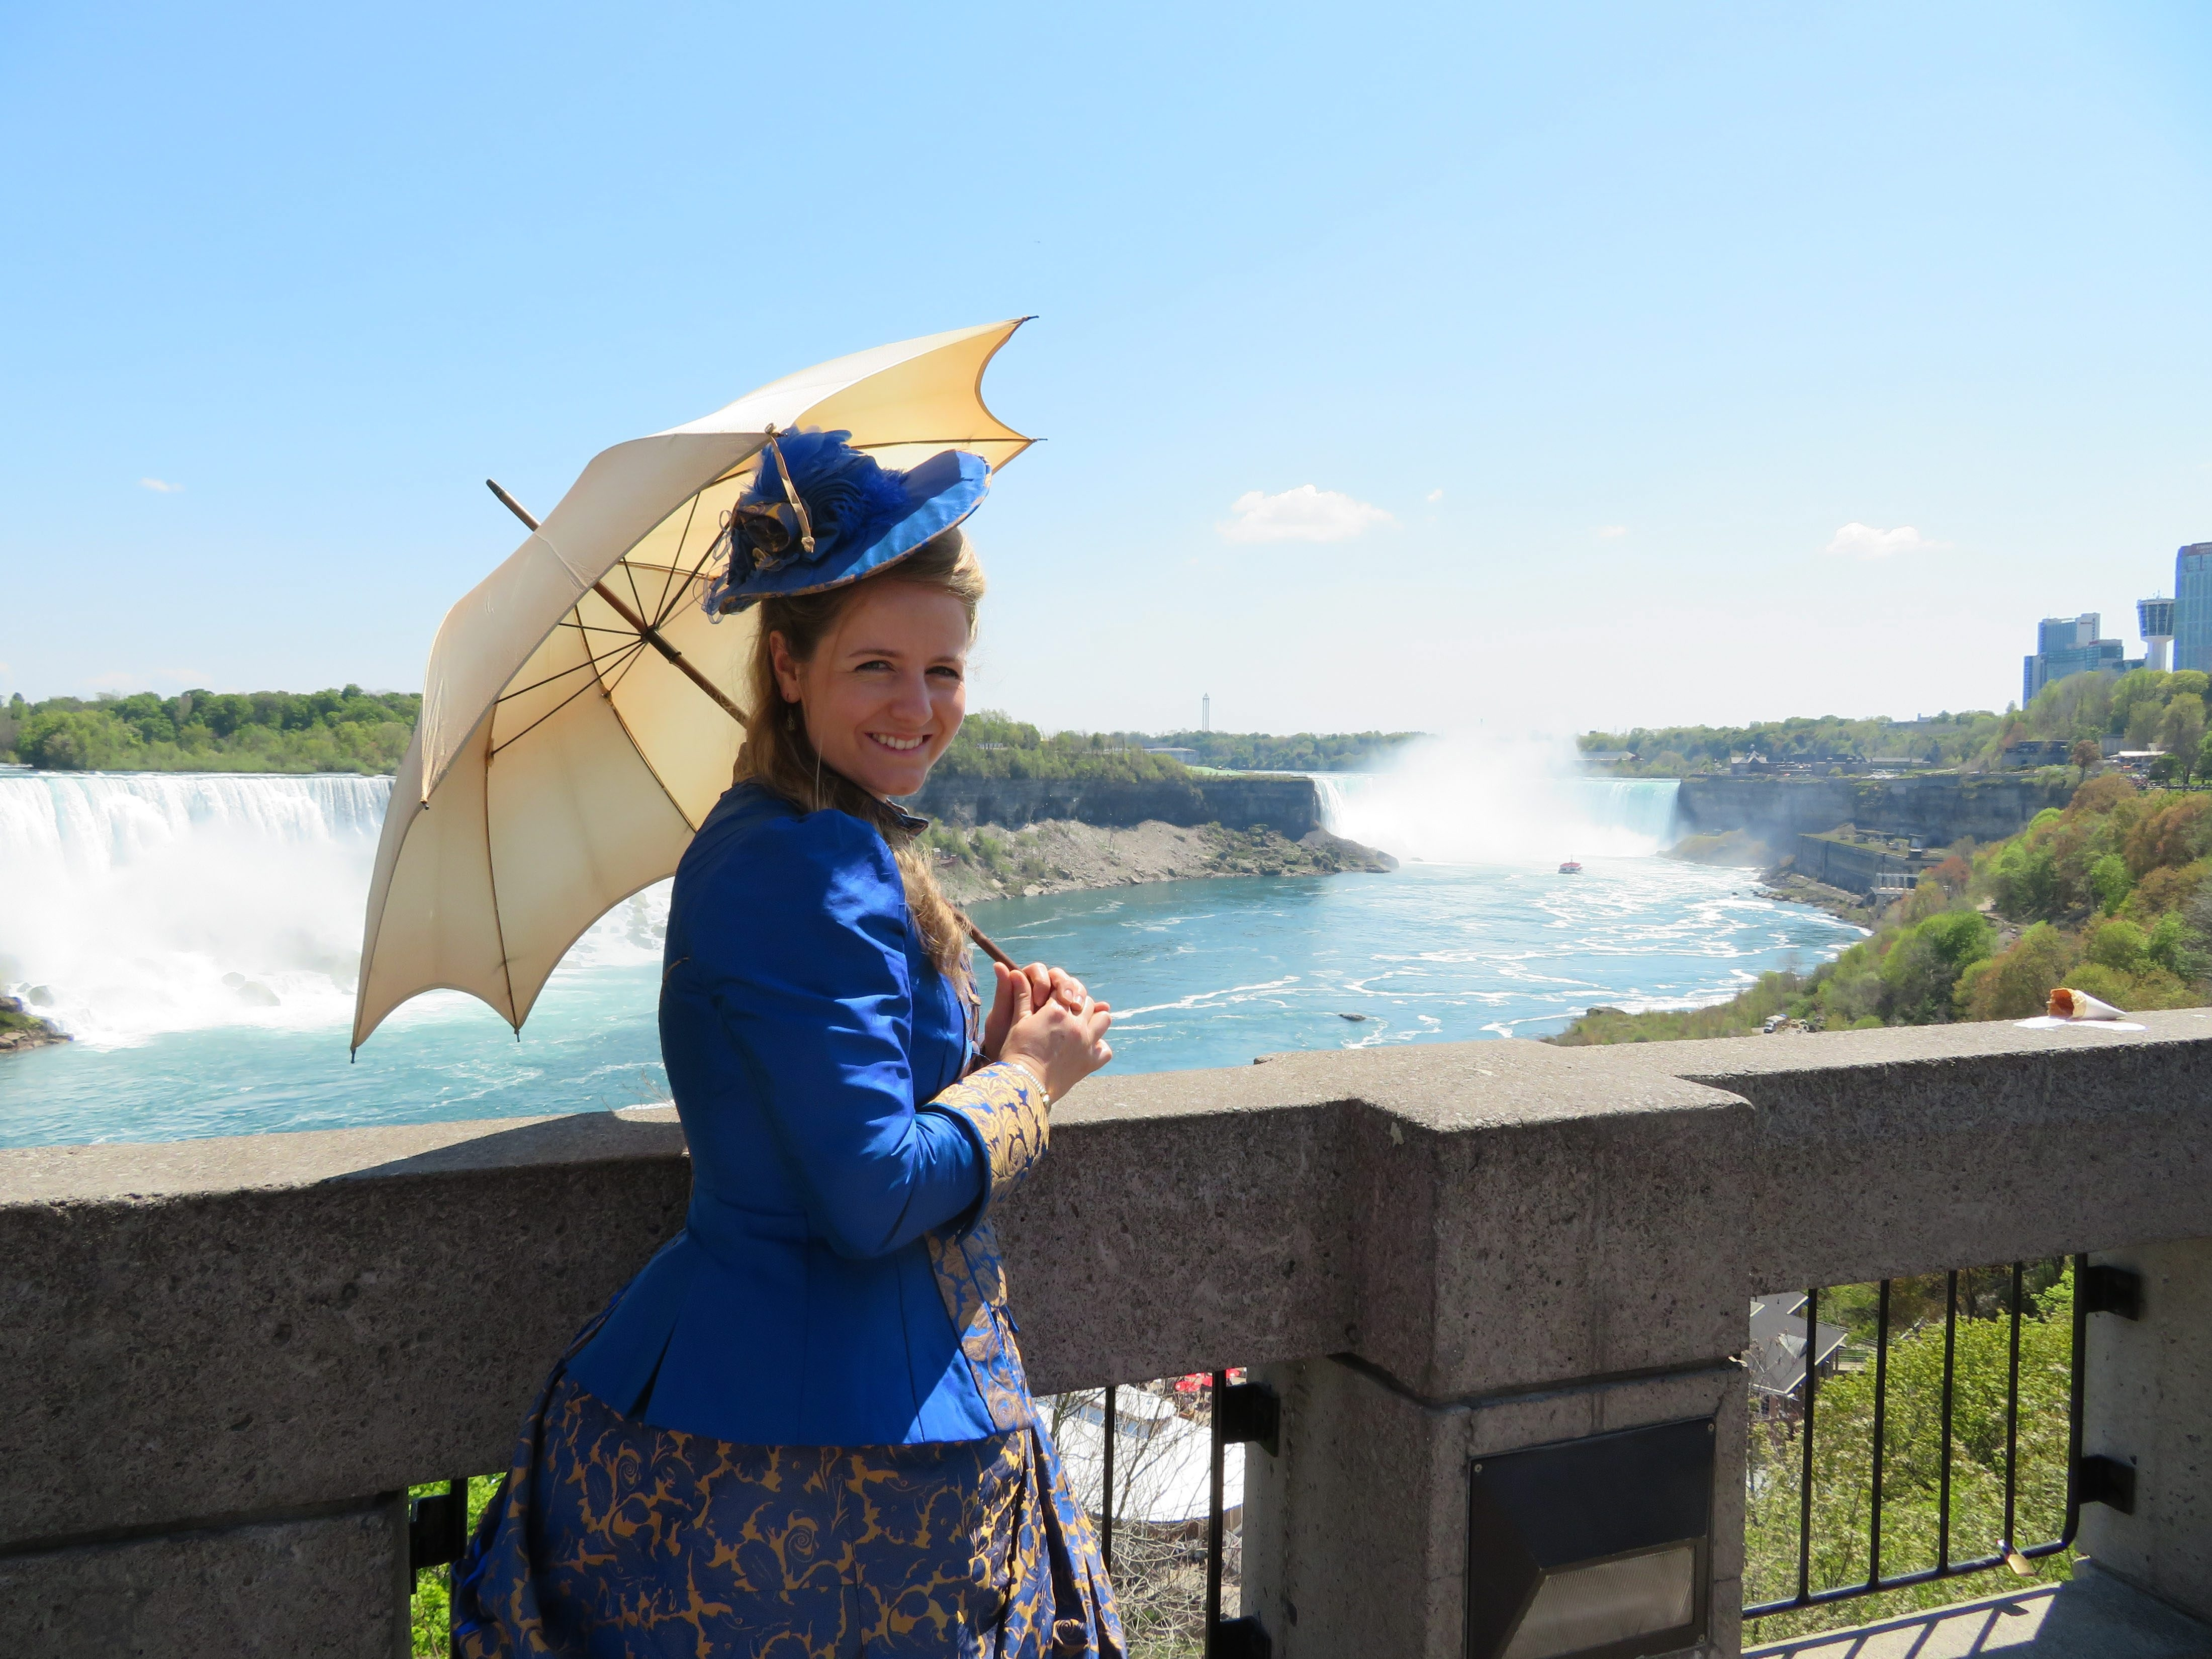 Sibylle Randoll is re-creating her great-great-grandfather's journey from Germany to Montana. On Monday, she stopped in Niagara Falls.